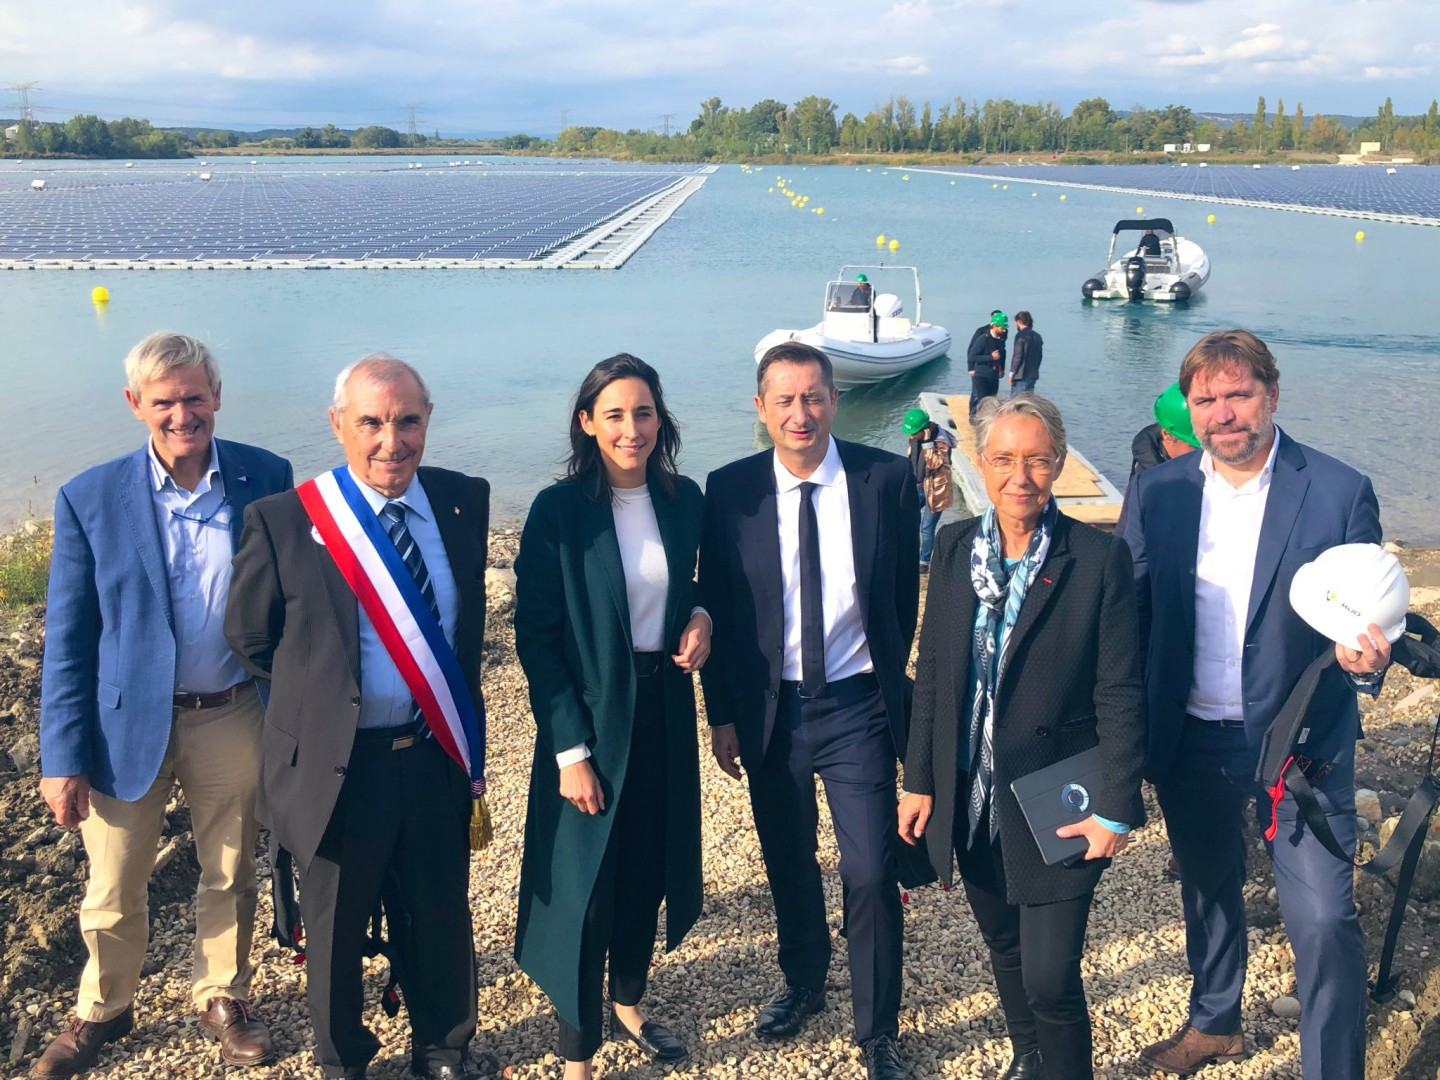 French environment minister Elisabeth Borne described O'MEGA 1 as Europe's largest PV plant as she toured the project last Friday (Image credit: French government)